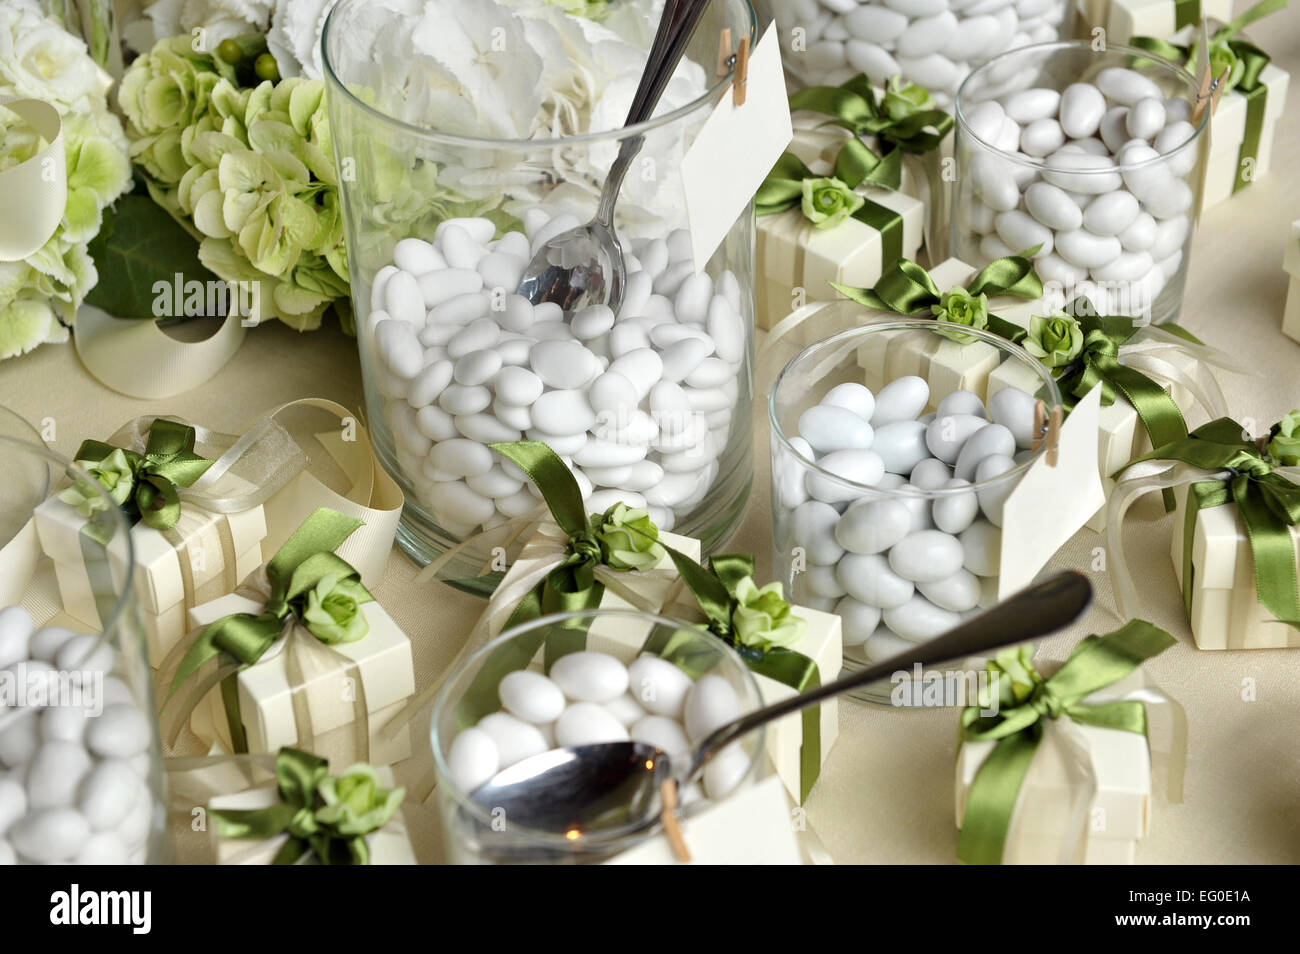 Sugared Almonds on Small Glasses and Small Gift Boxes - Stock Image